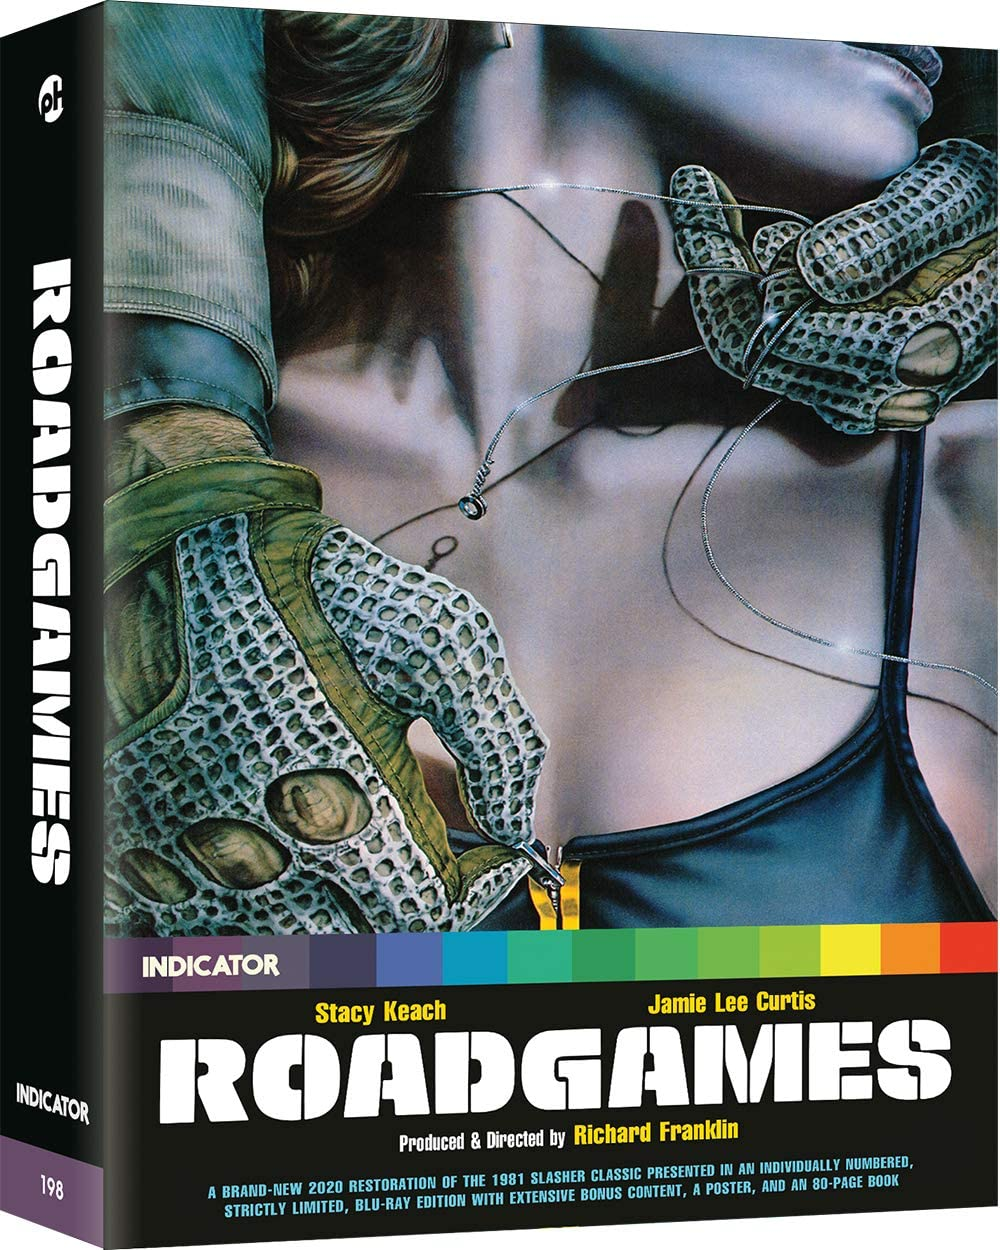 Roadgames Limited Edition UK Blu-Ray